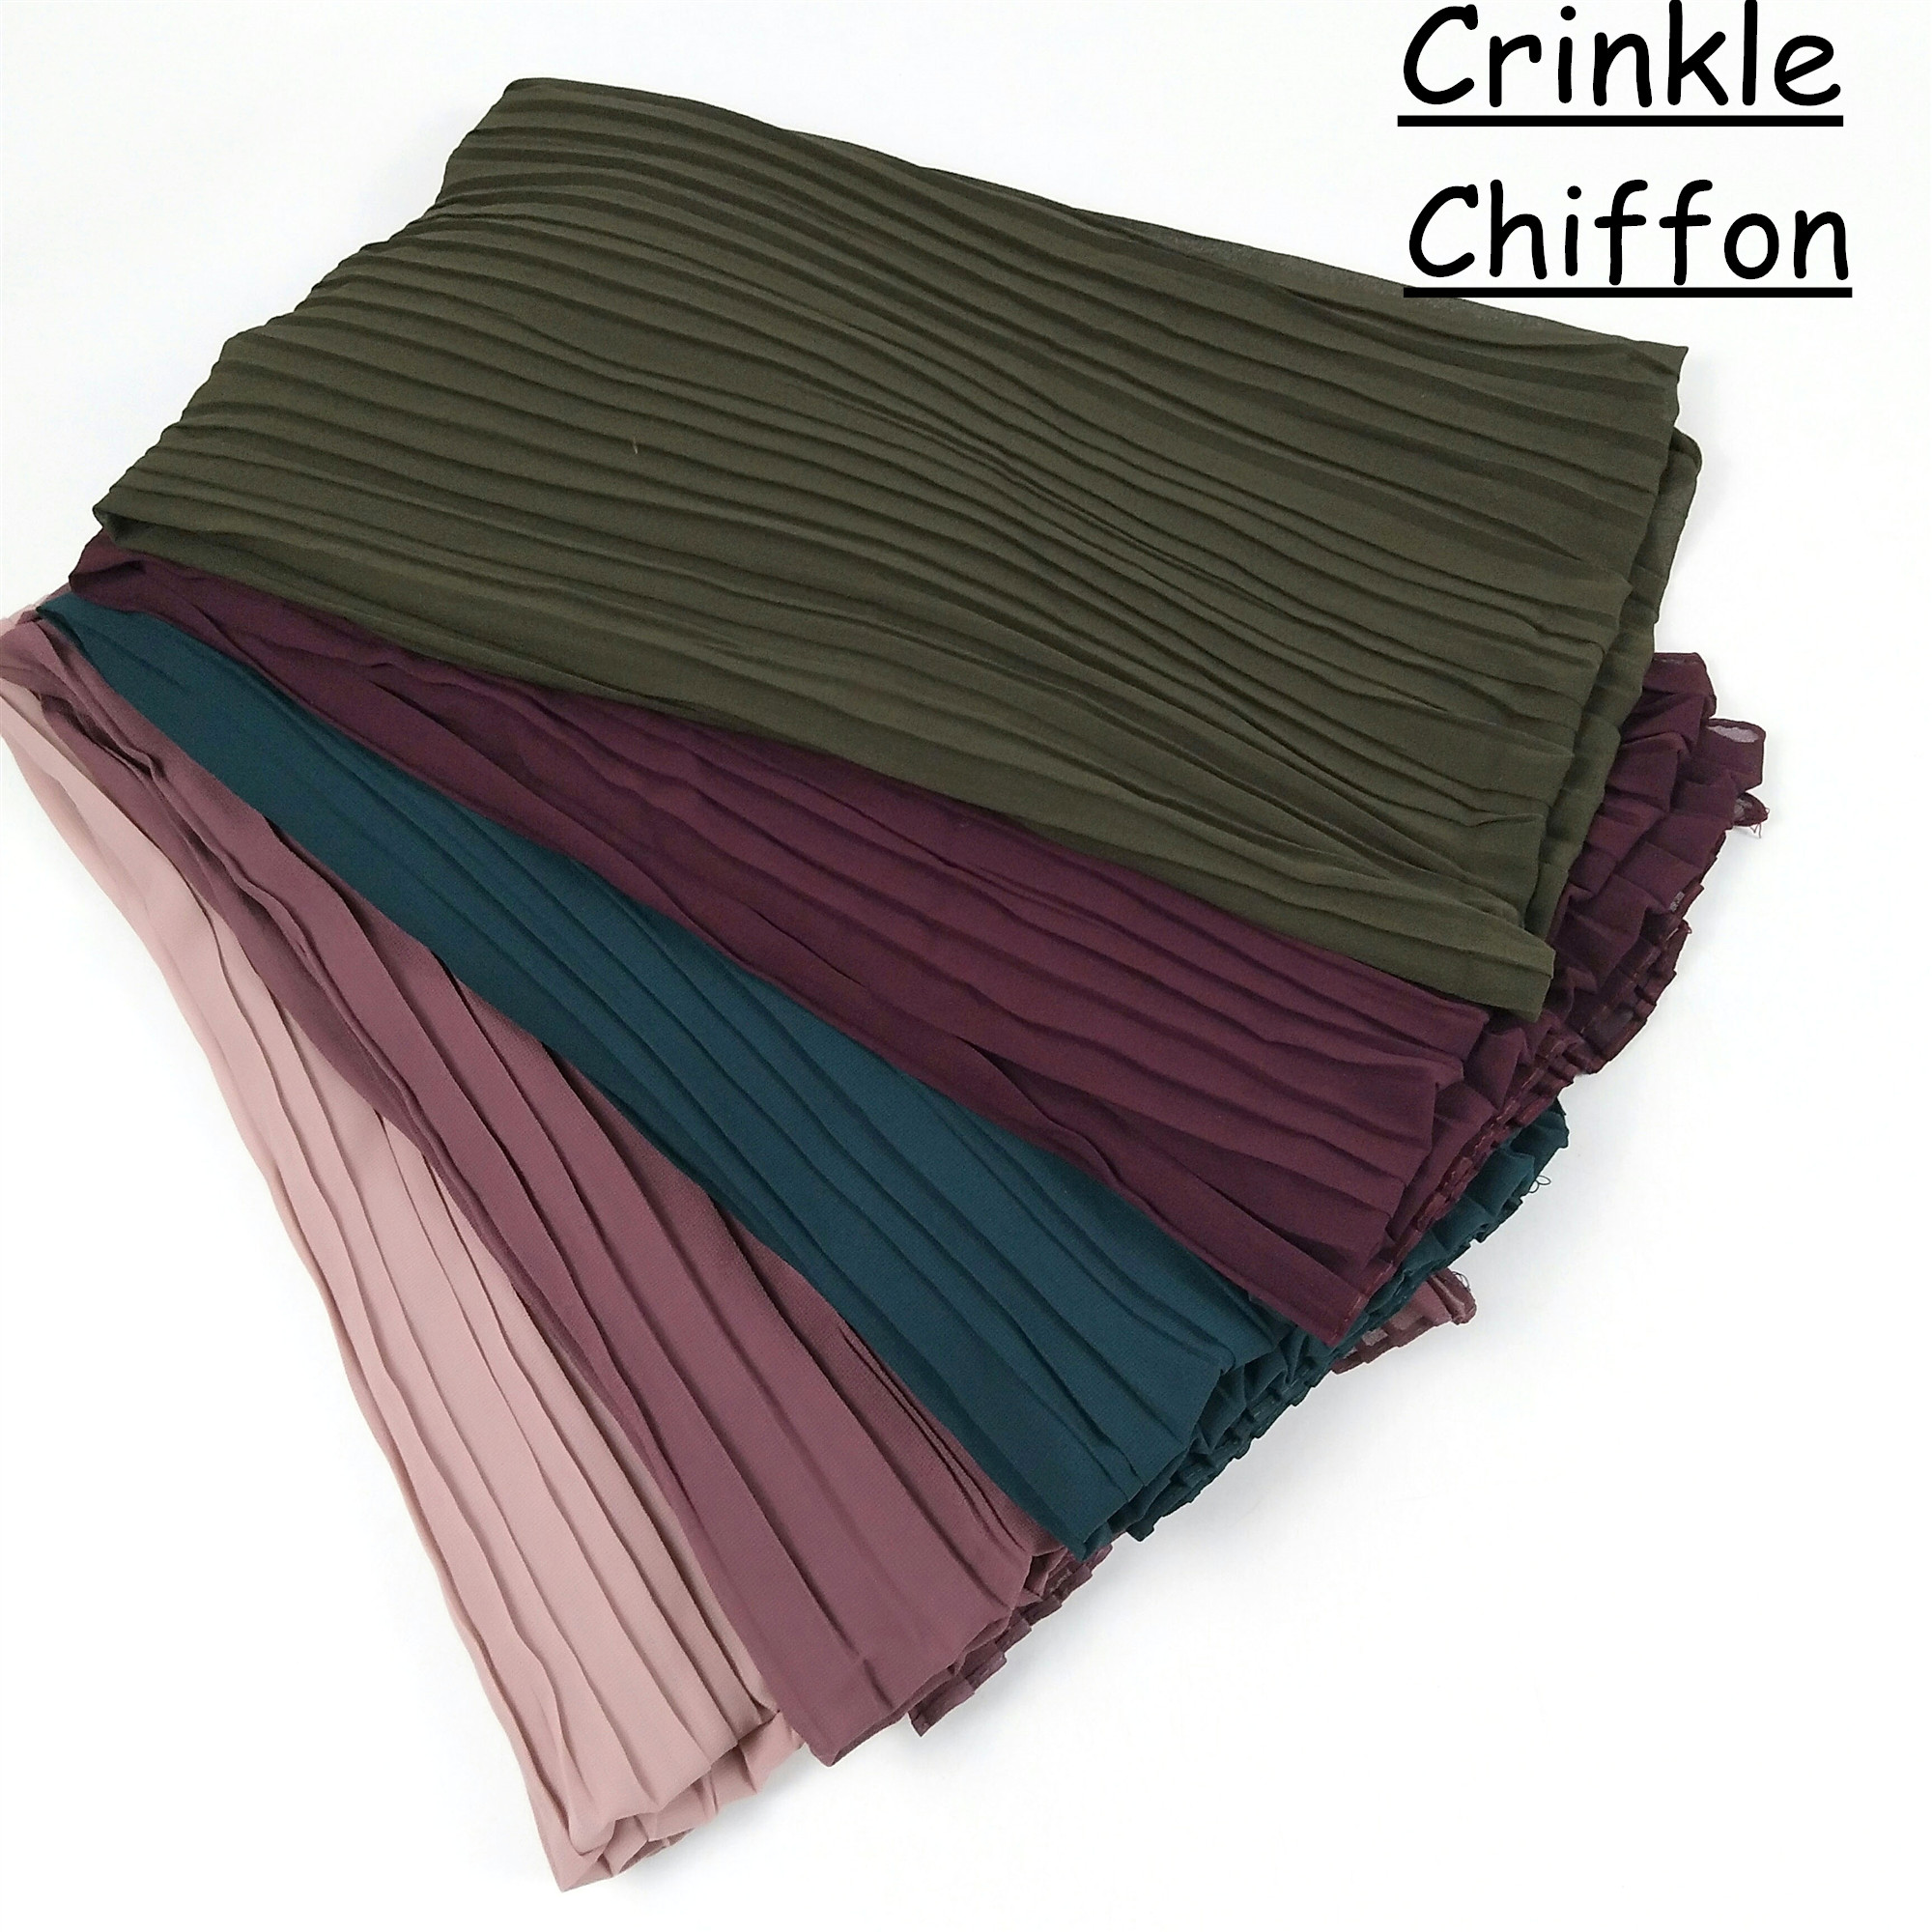 S94 High Quality Crinkle  Chiffon Hijab Scarf Wrap Shawls  Chiffon Hijab Long Wrap Headband Women Scarf/scarves 10pcs/lot